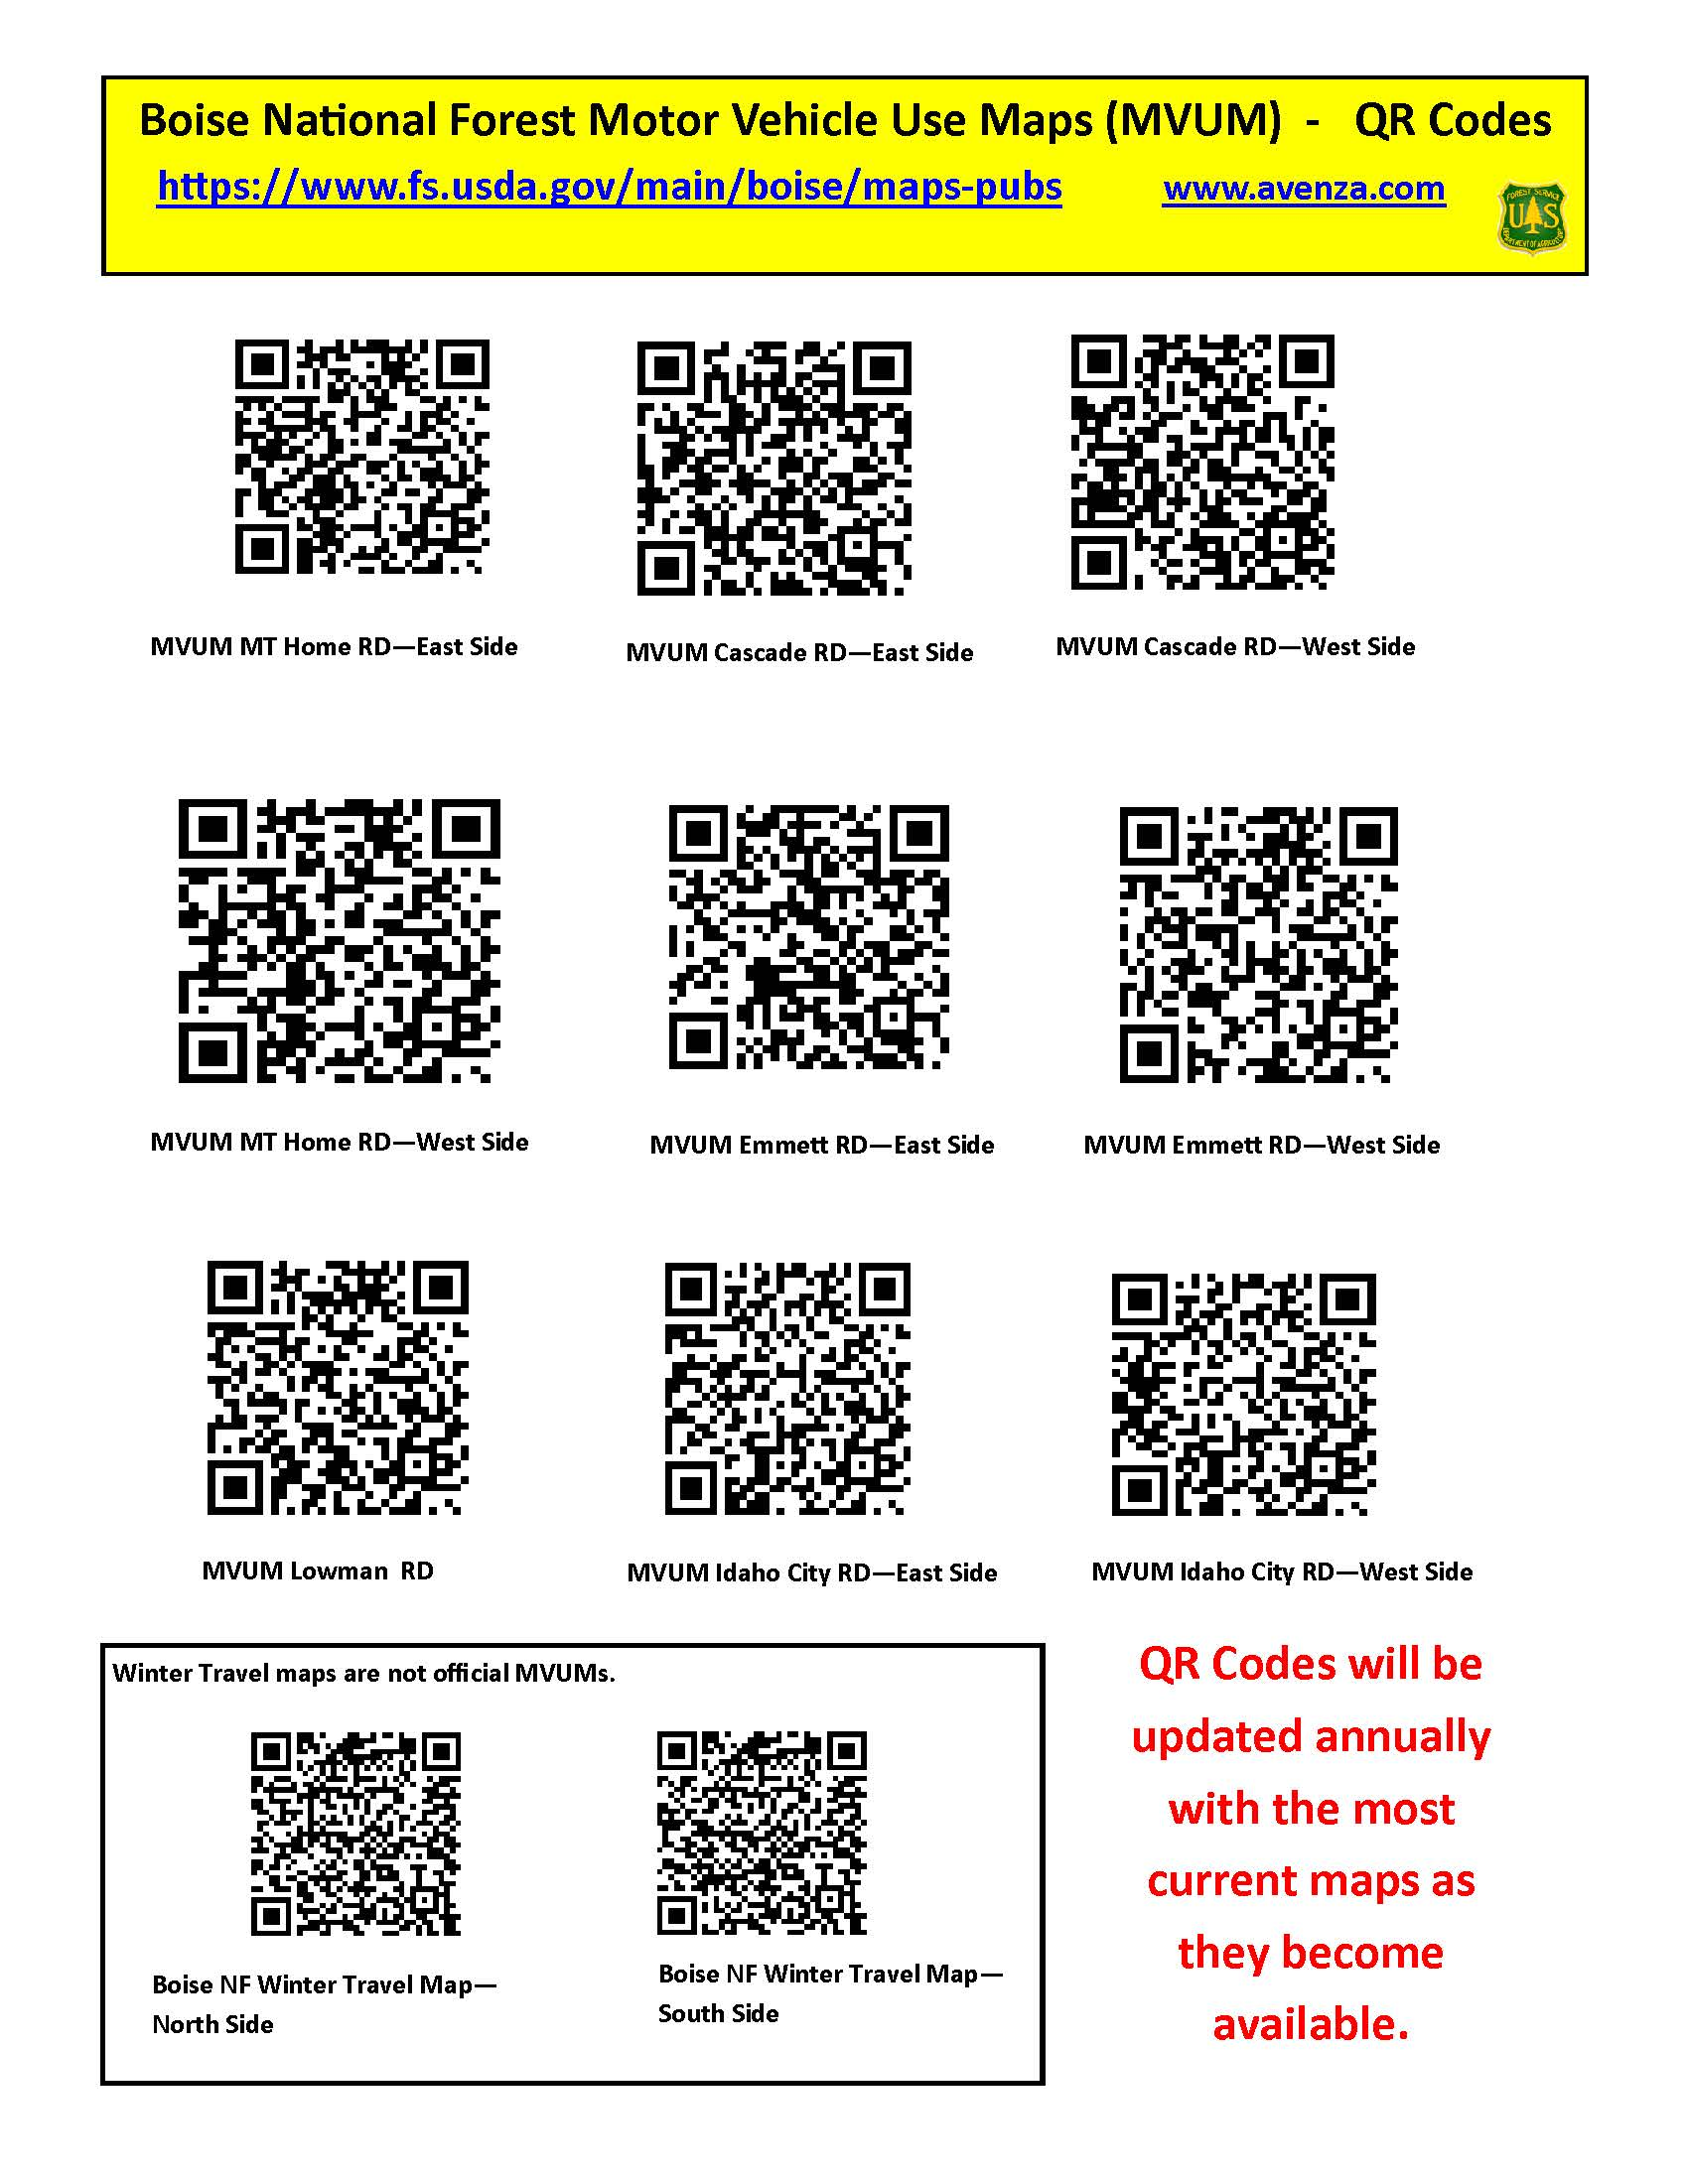 Photo of a document containing 2018 QR codes for MVUM maps